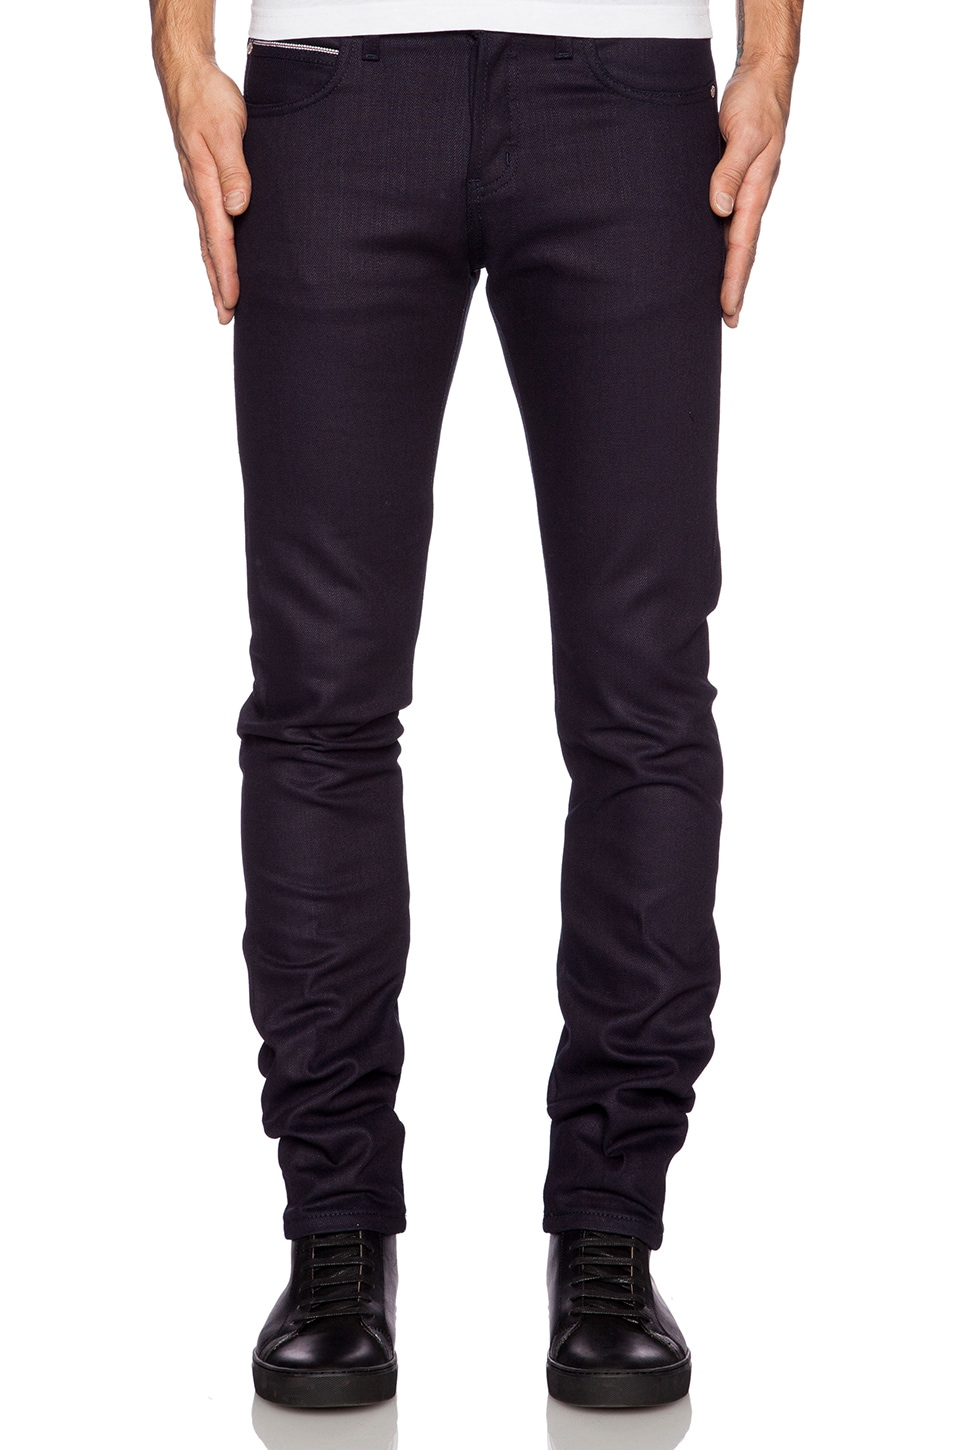 Super Skinny Guy 12.5oz Indigo/Indigo Stretch Selvedge by Naked & Famous Denim